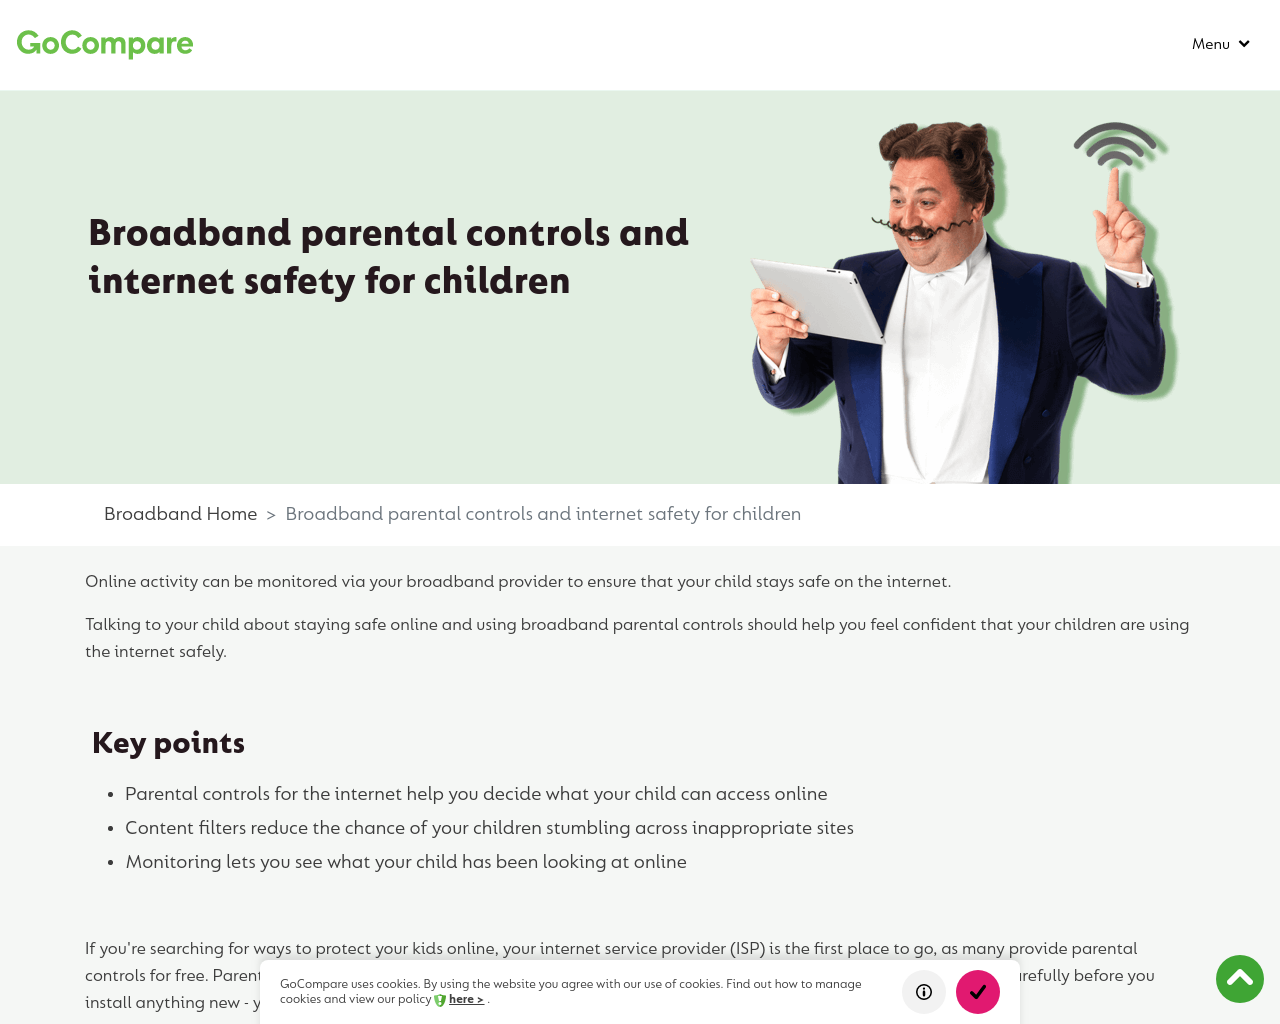 Go Compare Internet Safety